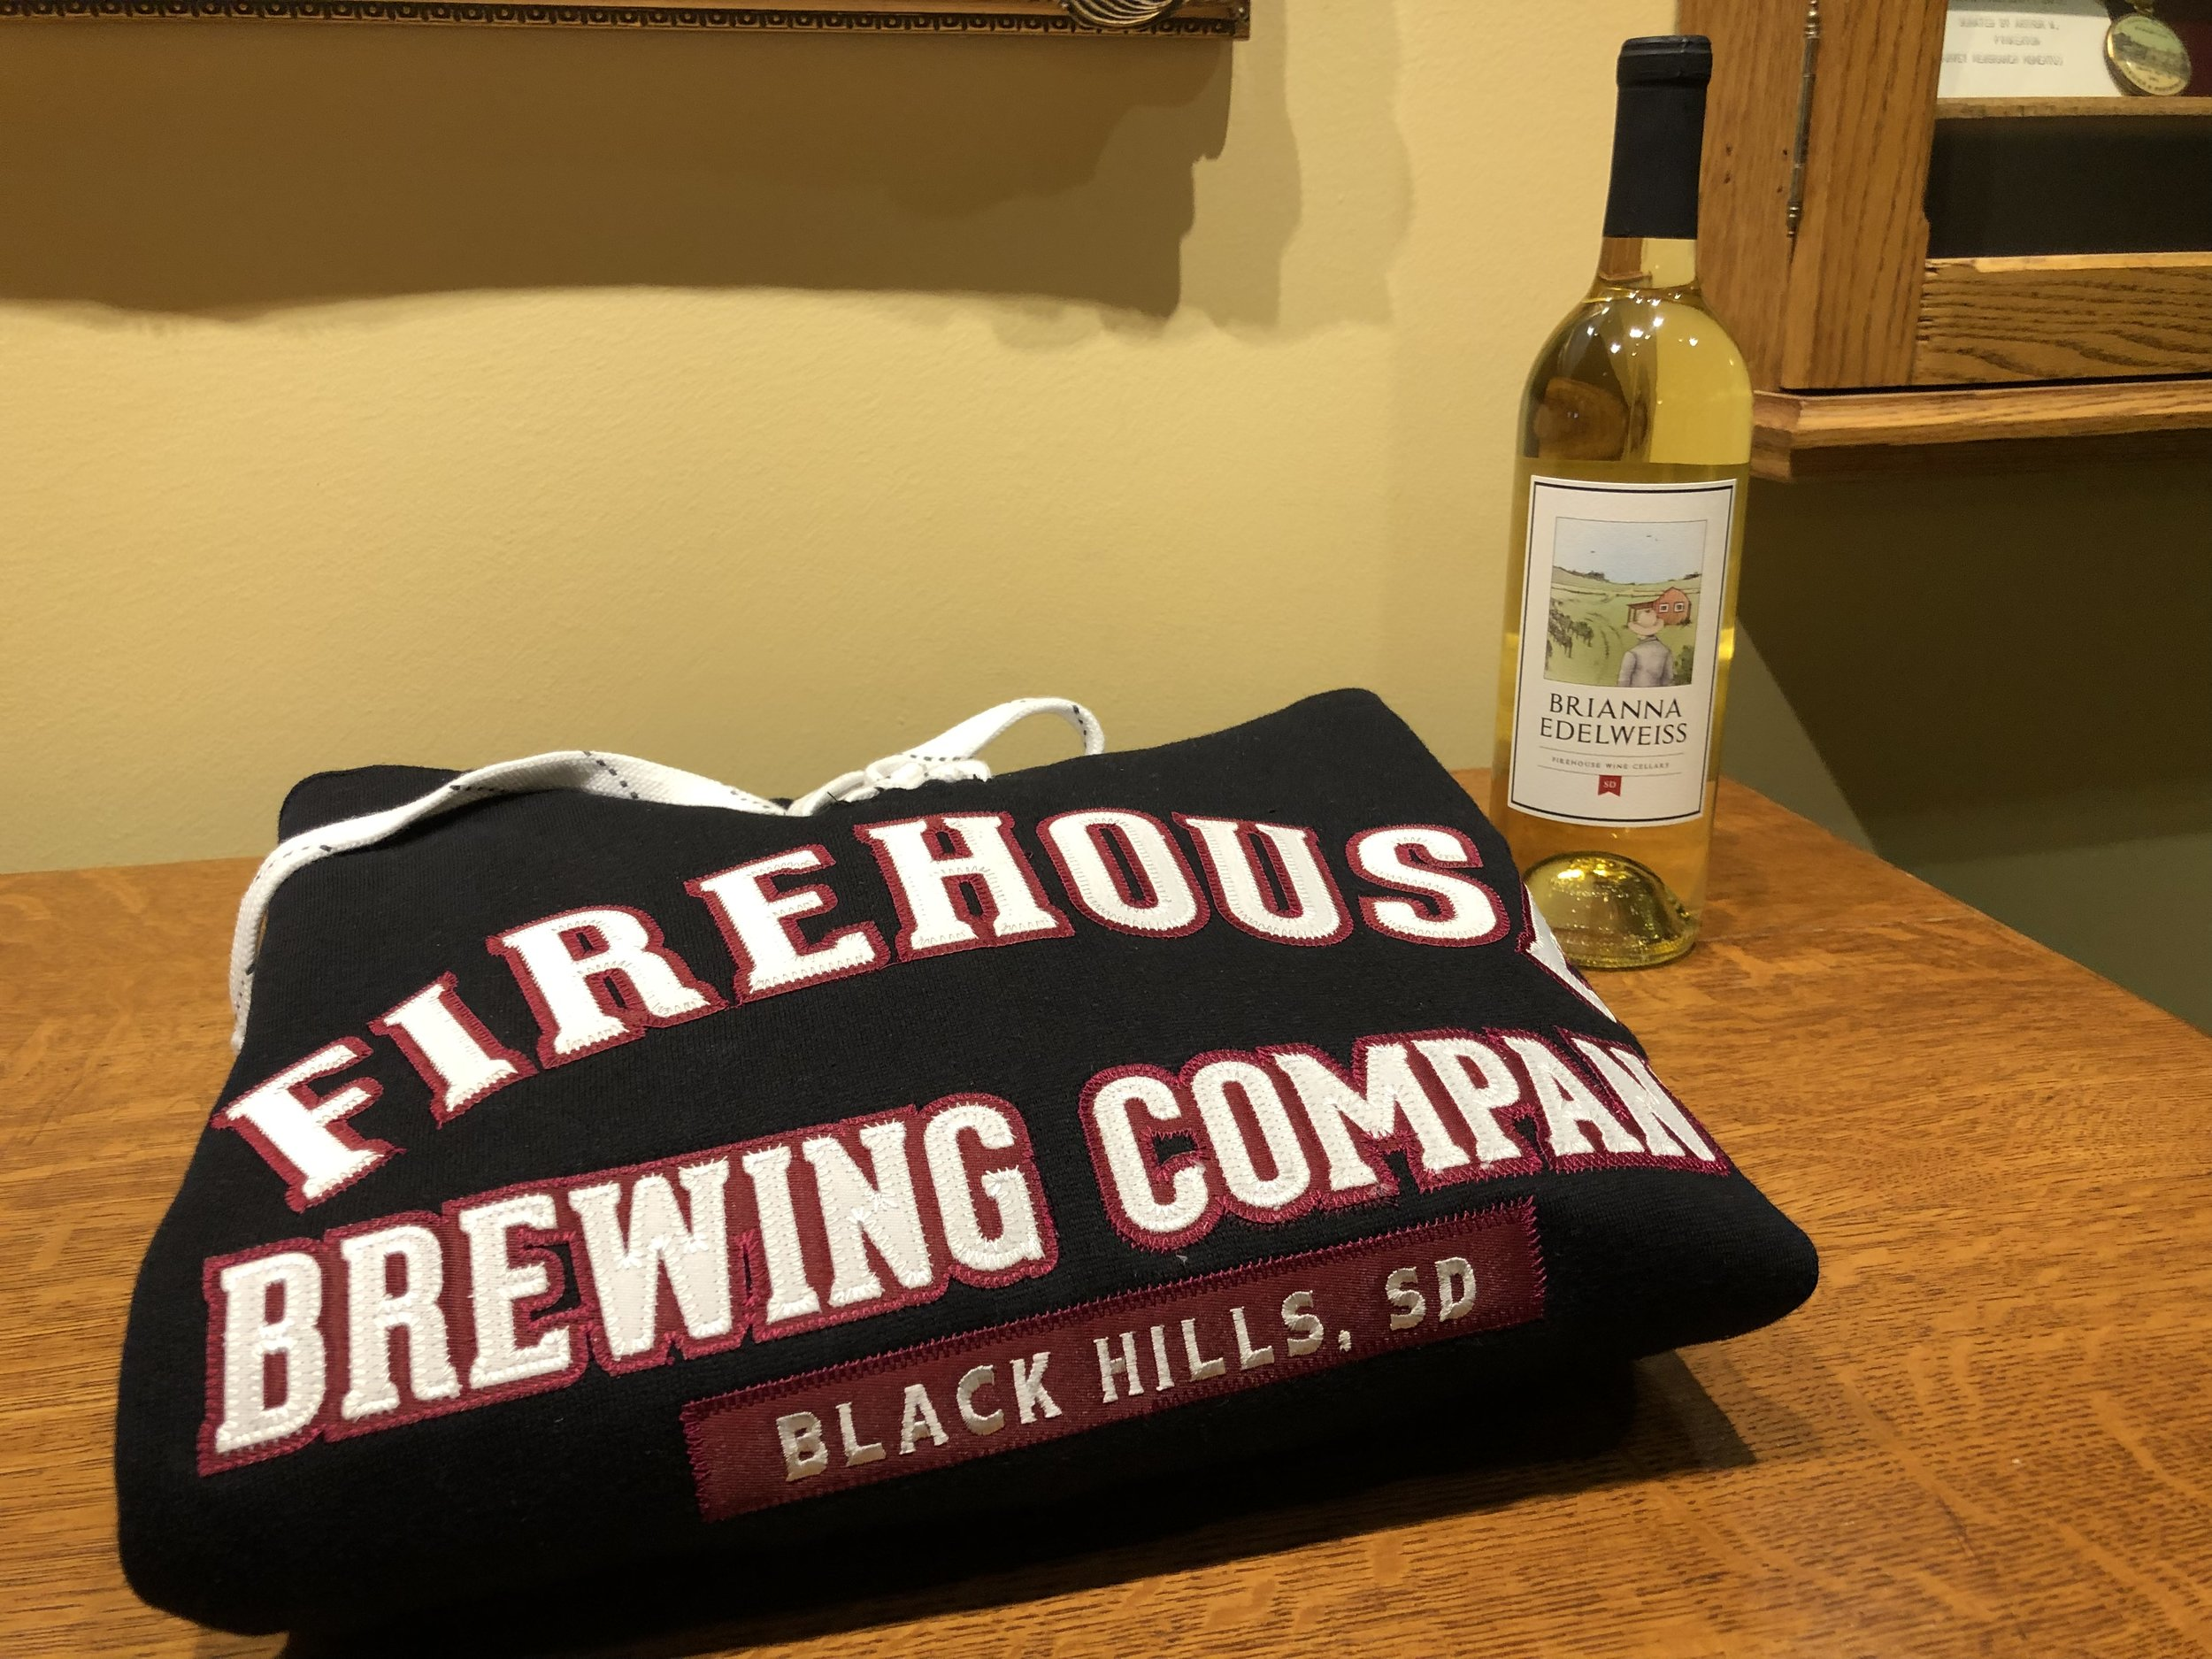 Firehouse Brewering Company woman's hoodie (XXL) and bottle of Brianna Edelweiss wine from Rapid City, South Dakota